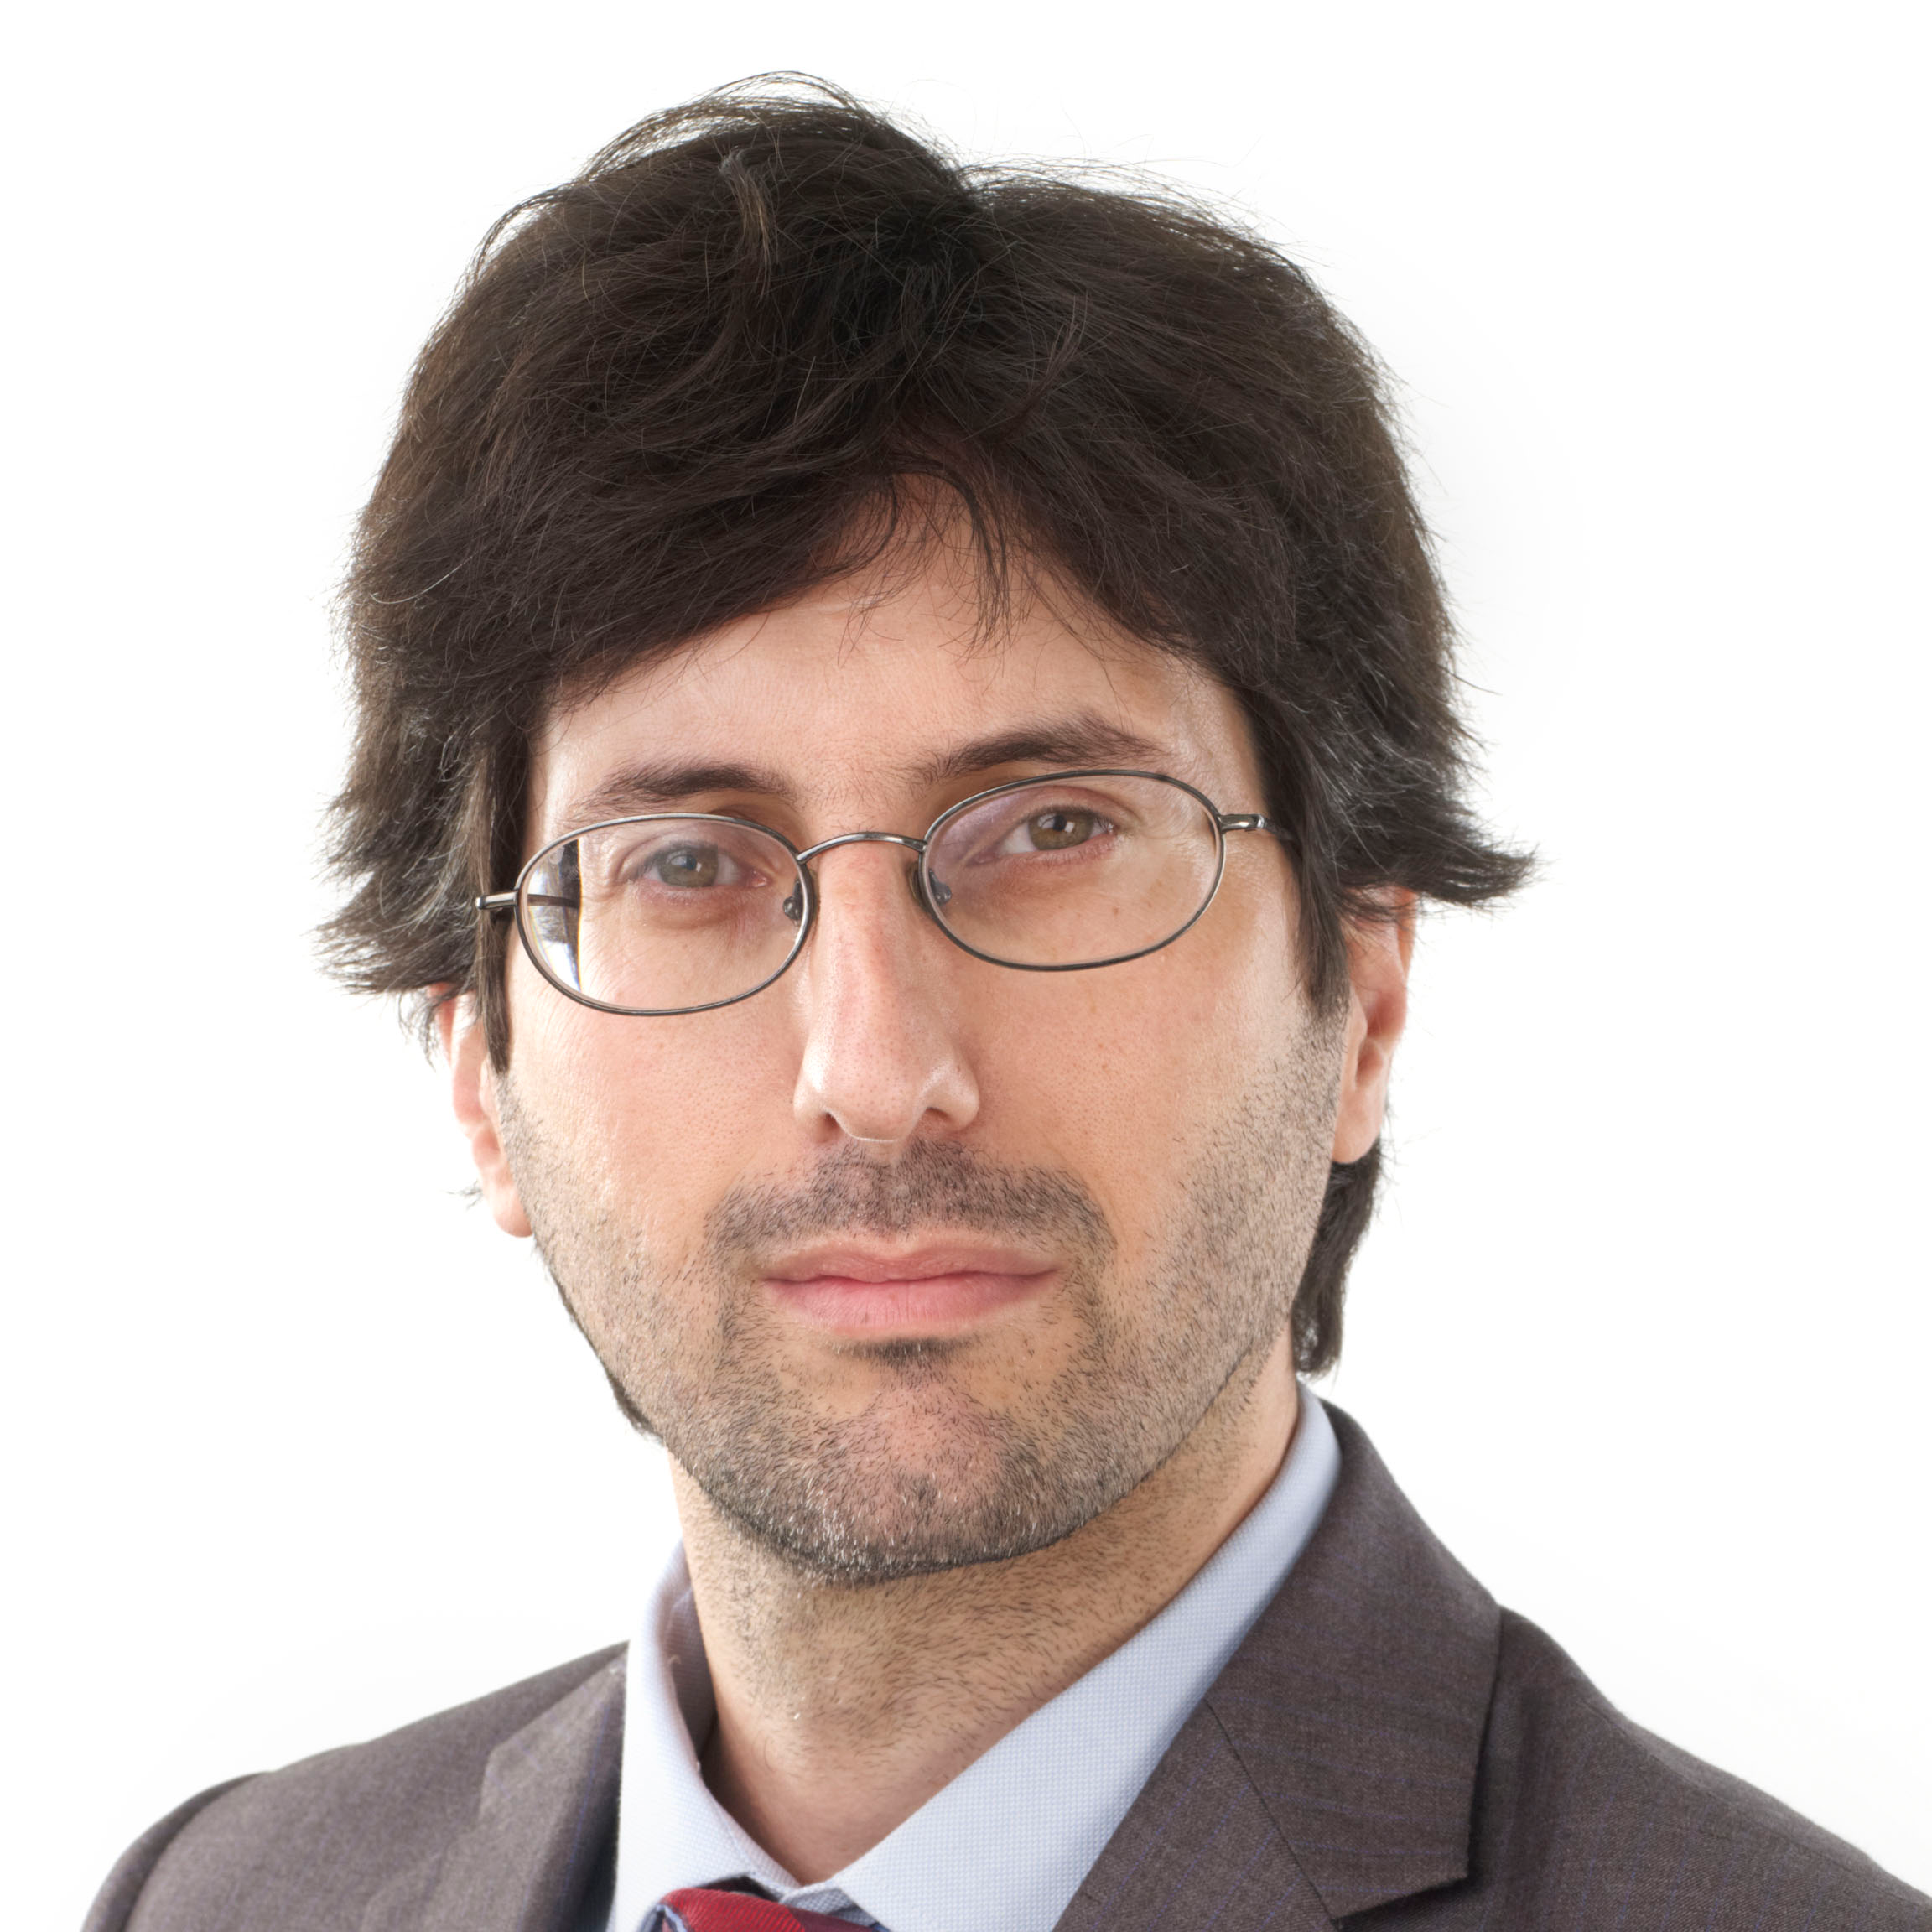 Alfonso Martinez Caminero, Package Lead, Offshore at Iberdrola Renovables